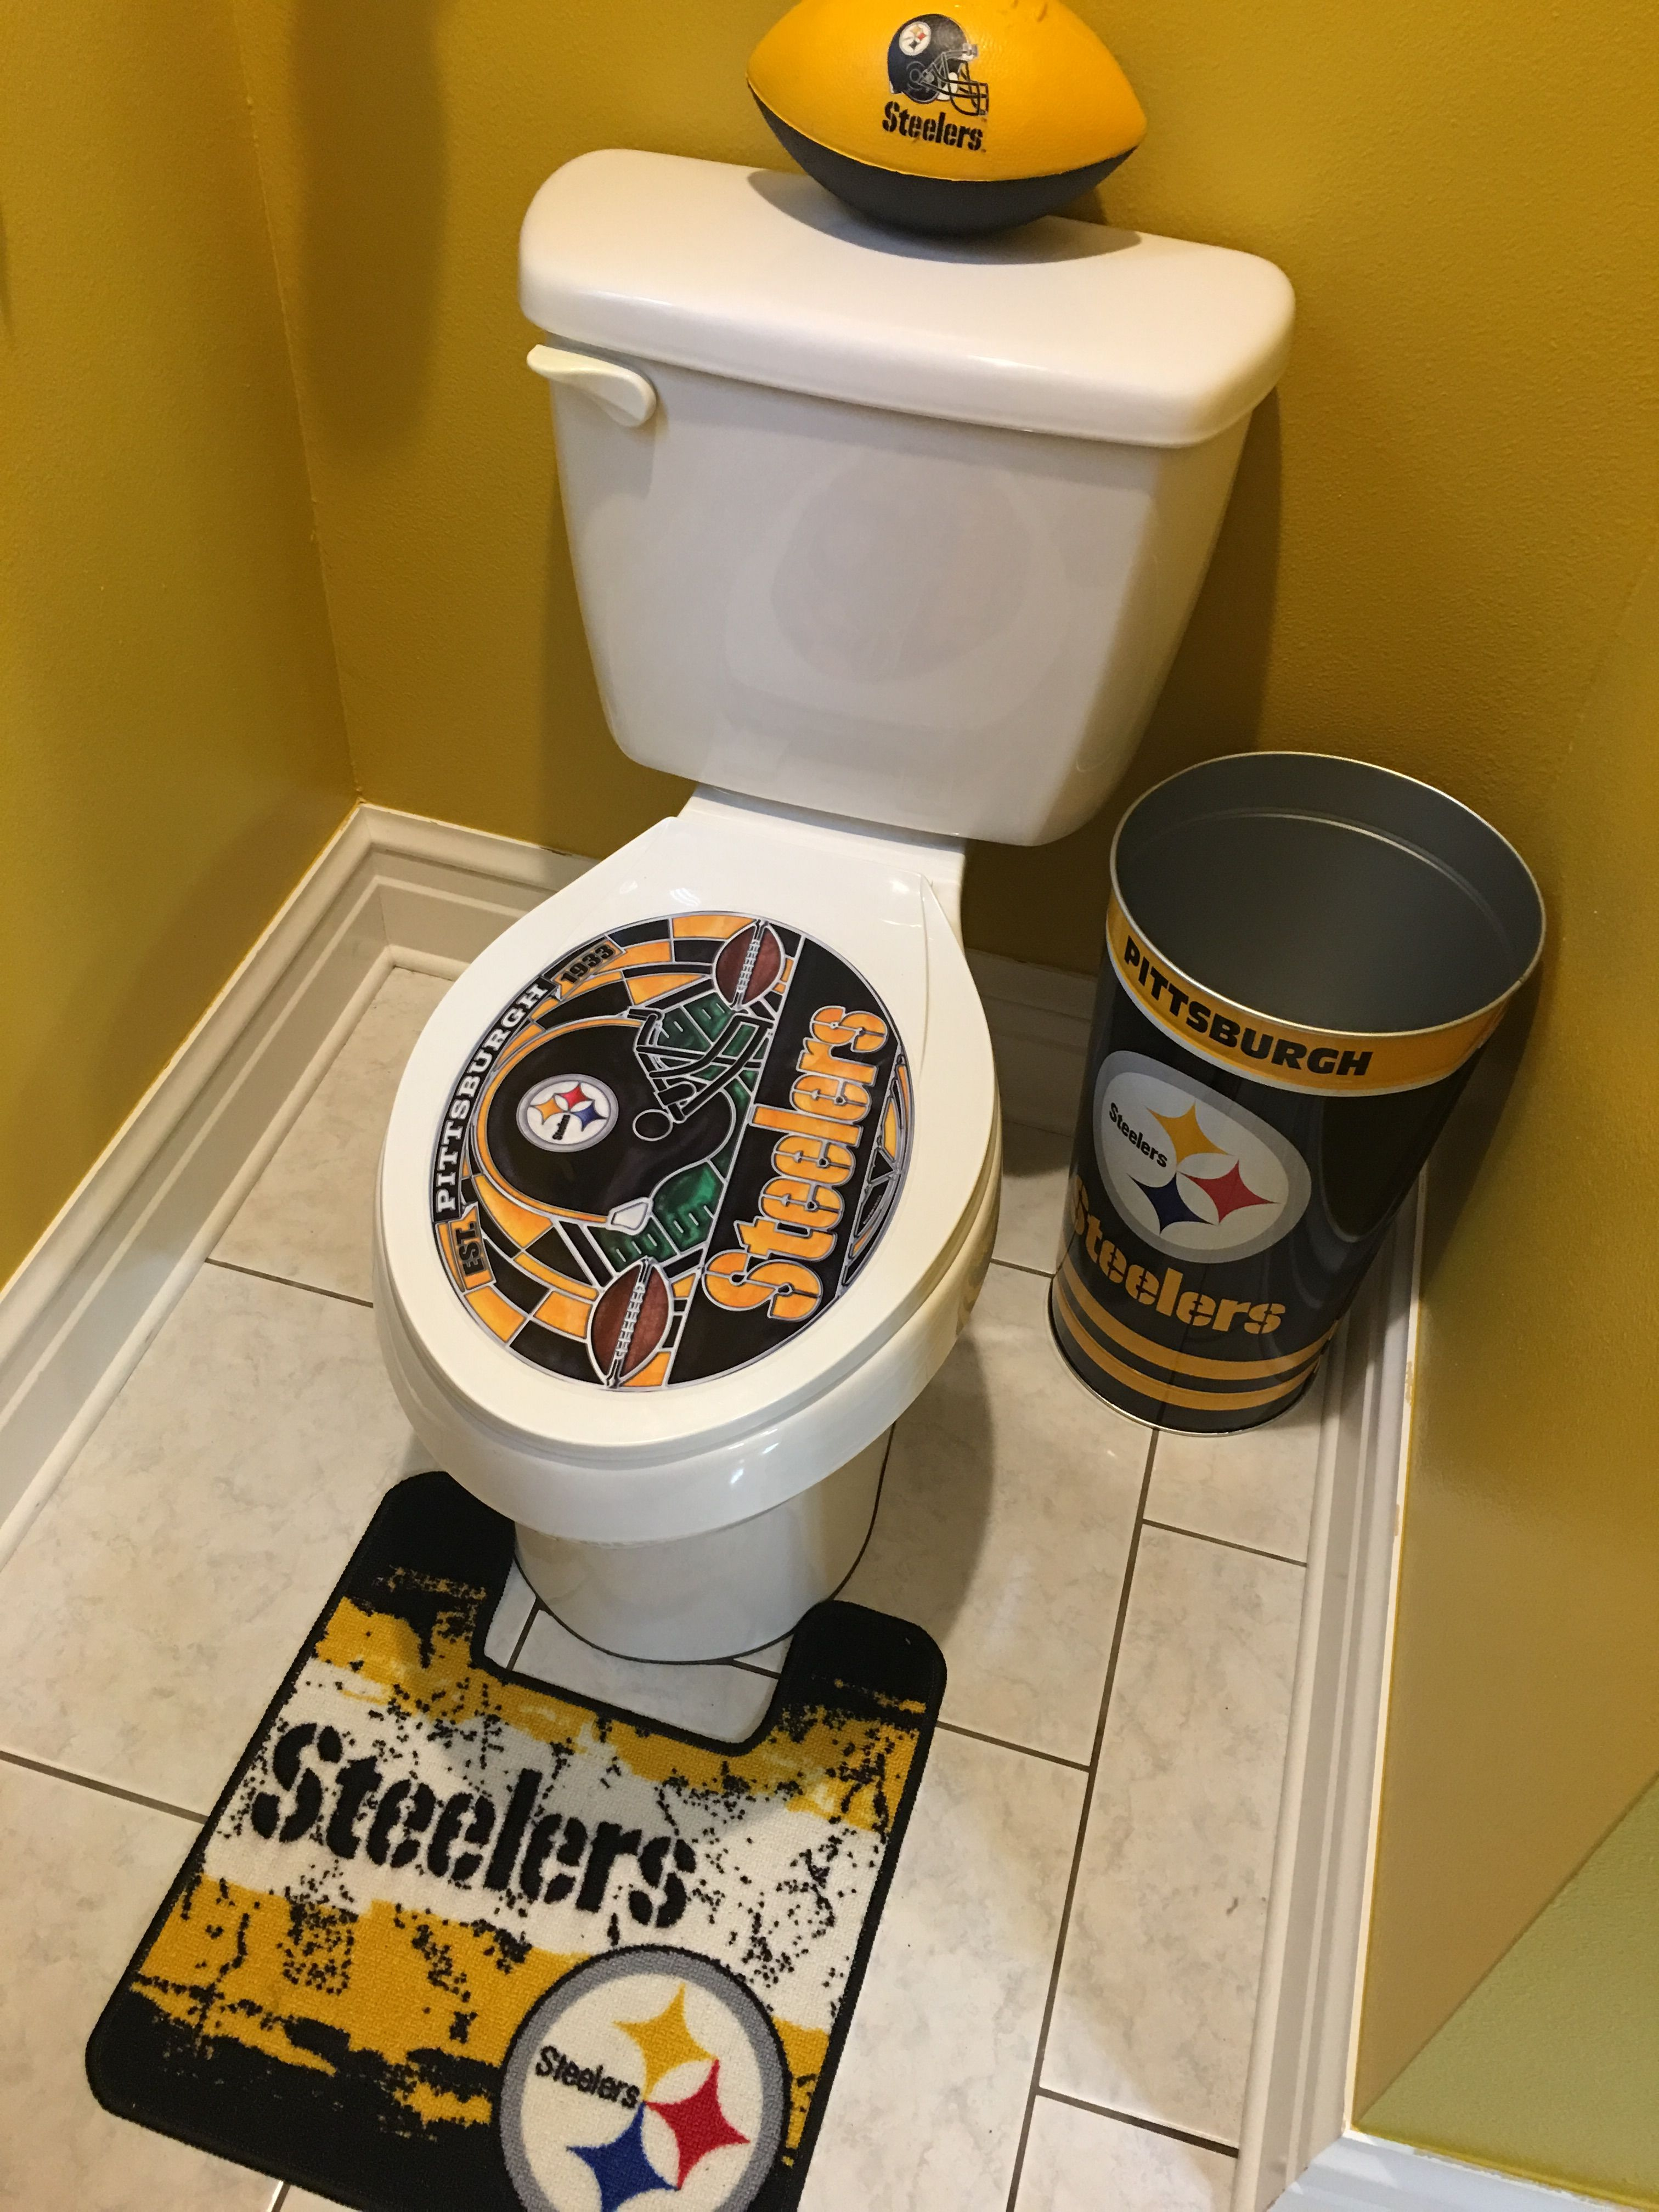 Steelers Bathroom With Images